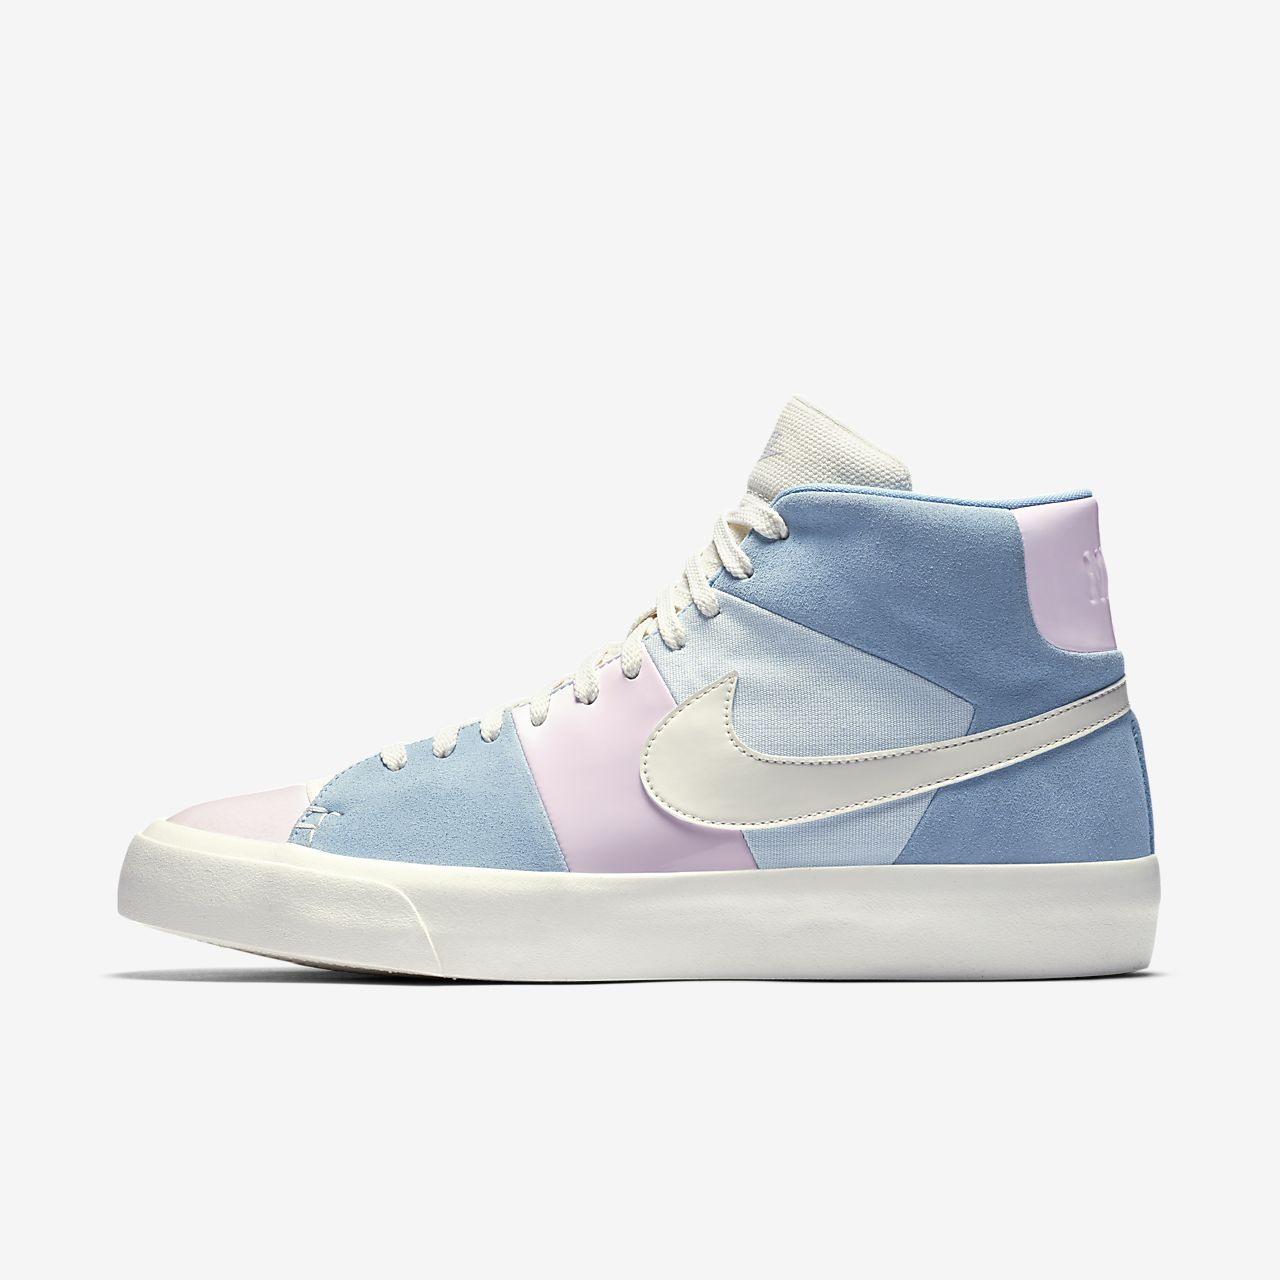 competitive price 68b29 dc995 Low Resolution Nike Blazer Royal Easter QS Zapatillas - Hombre Nike Blazer  Royal Easter QS Zapatillas - Hombre